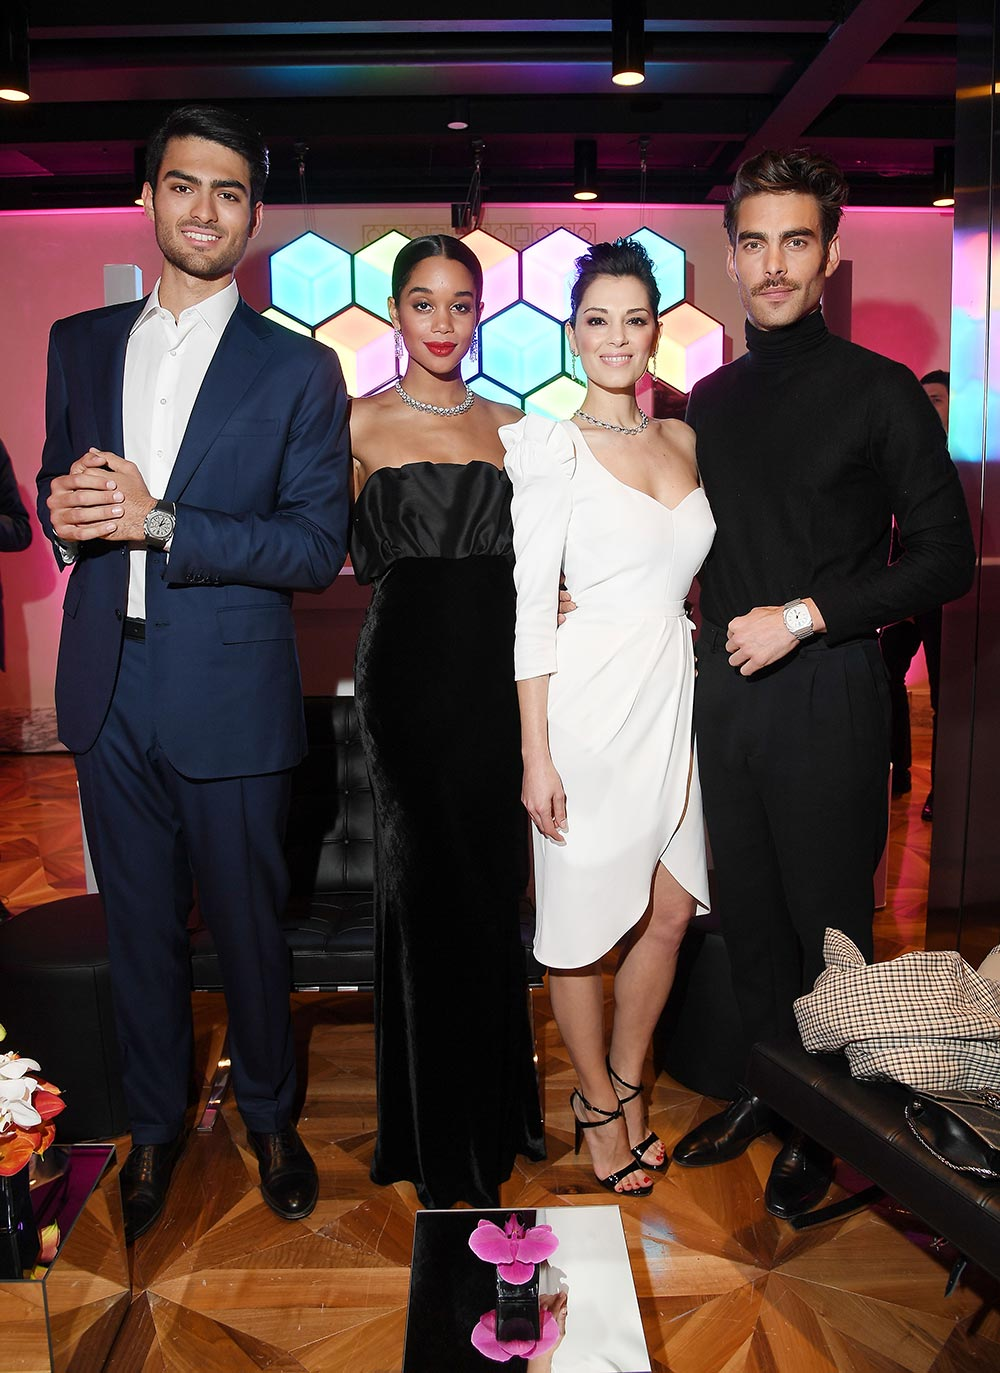 Bulgari Basel Press Party - Matteo Bocelli, Laura Harrier, Giorgia Surina, Jon Kortajarena - Hair & makeup Massimo Serini